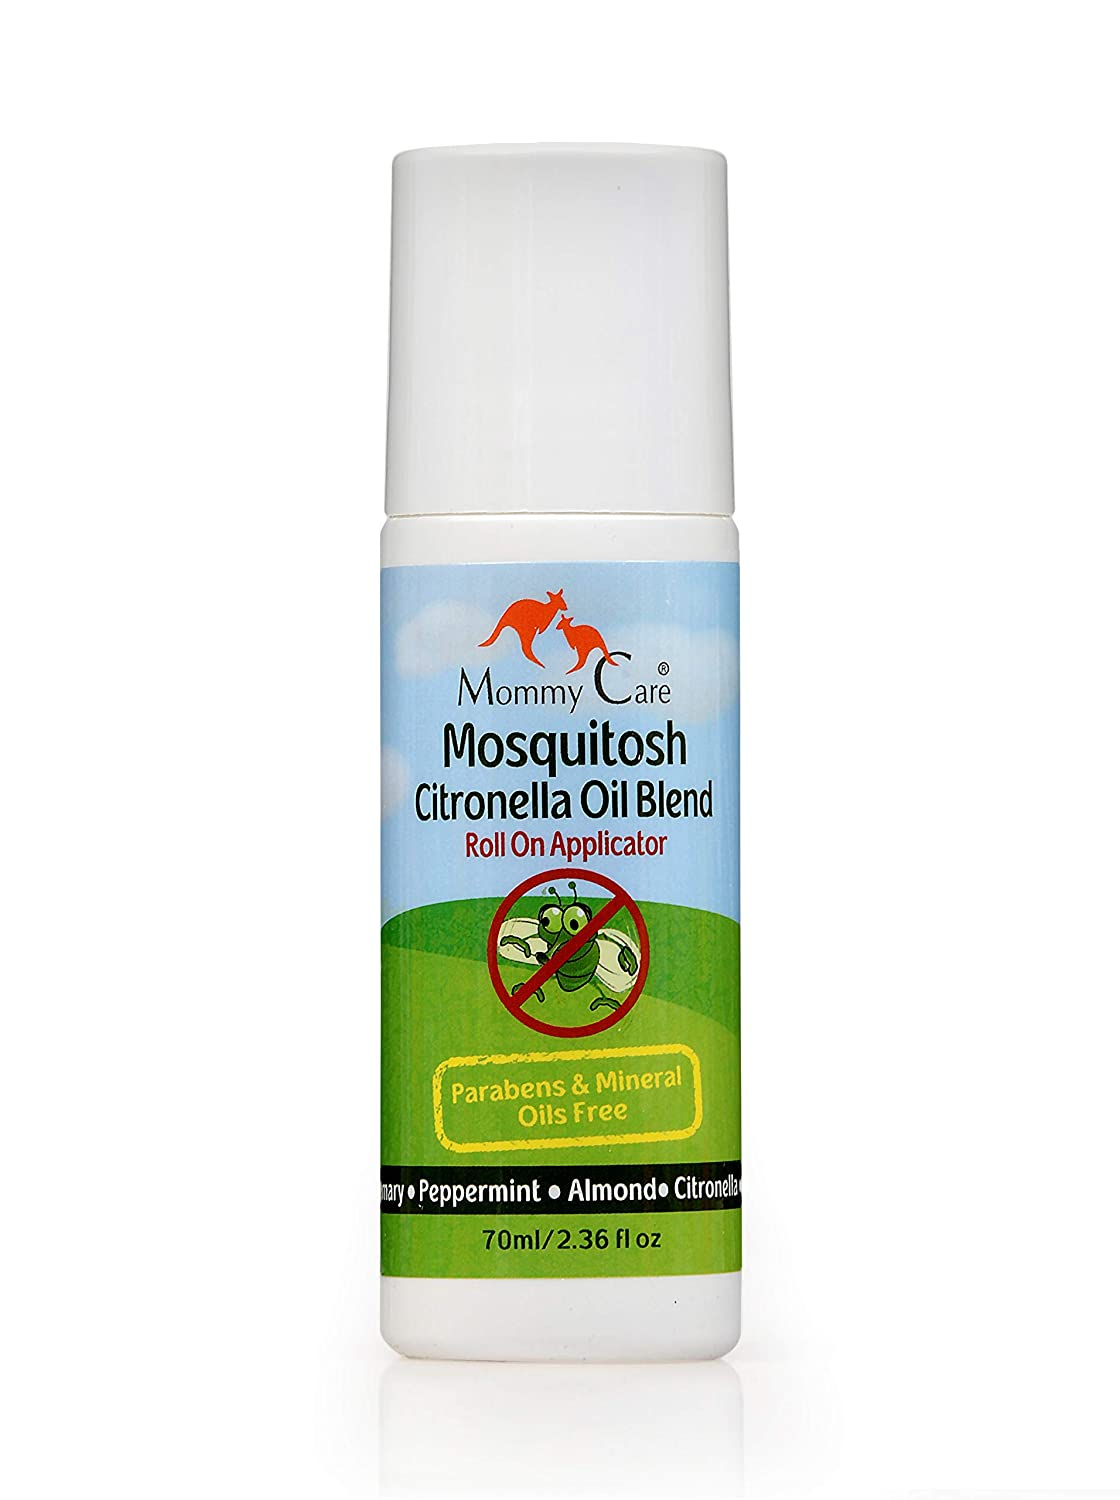 Mosquitosh Citronella Oil Mix Roll On Natural Mosquito Repellent Safe for Babies and Kids Mommy Care